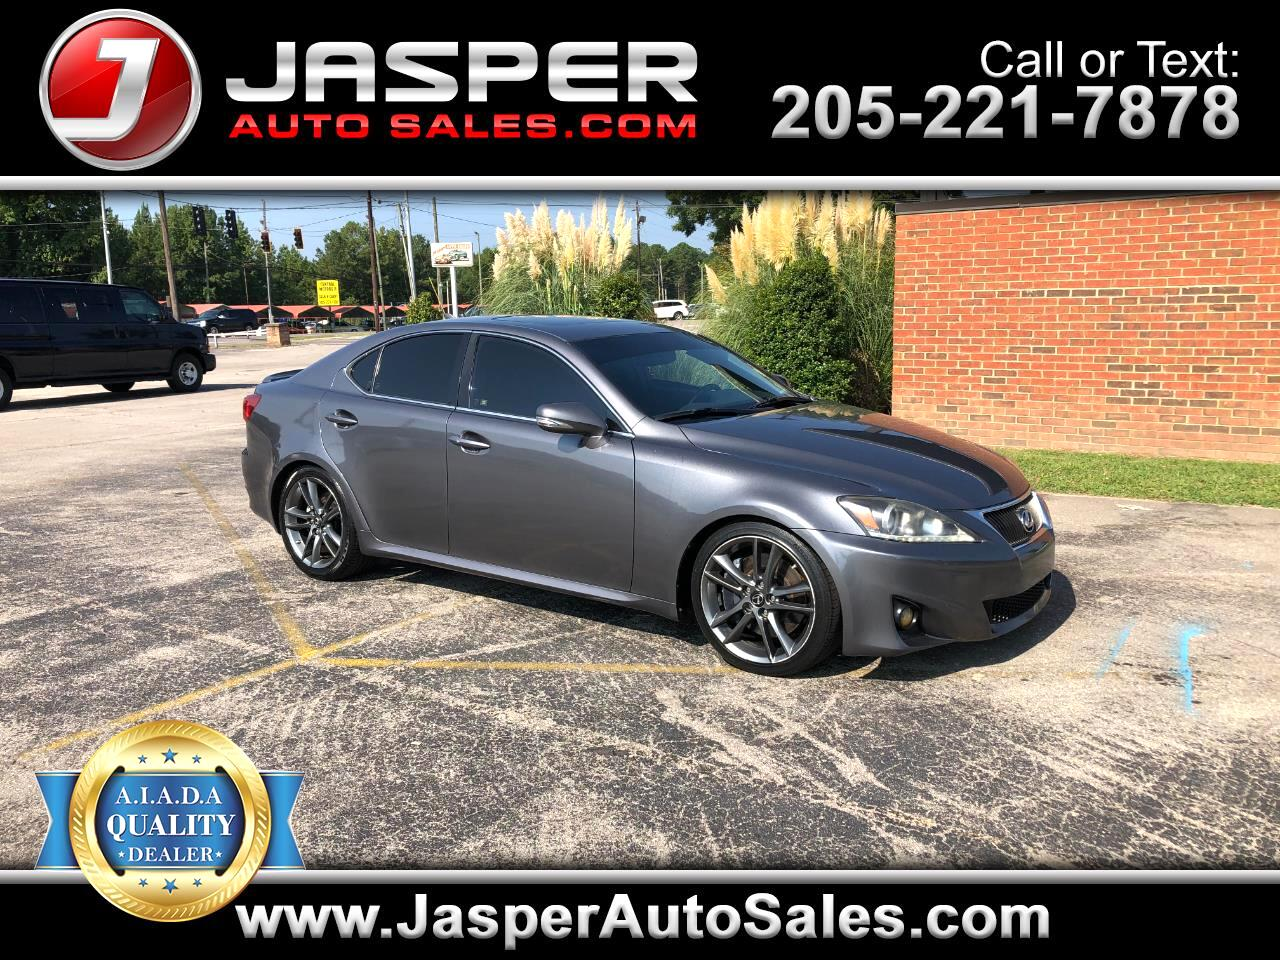 Lexus IS 350 4dr Sdn RWD 2012